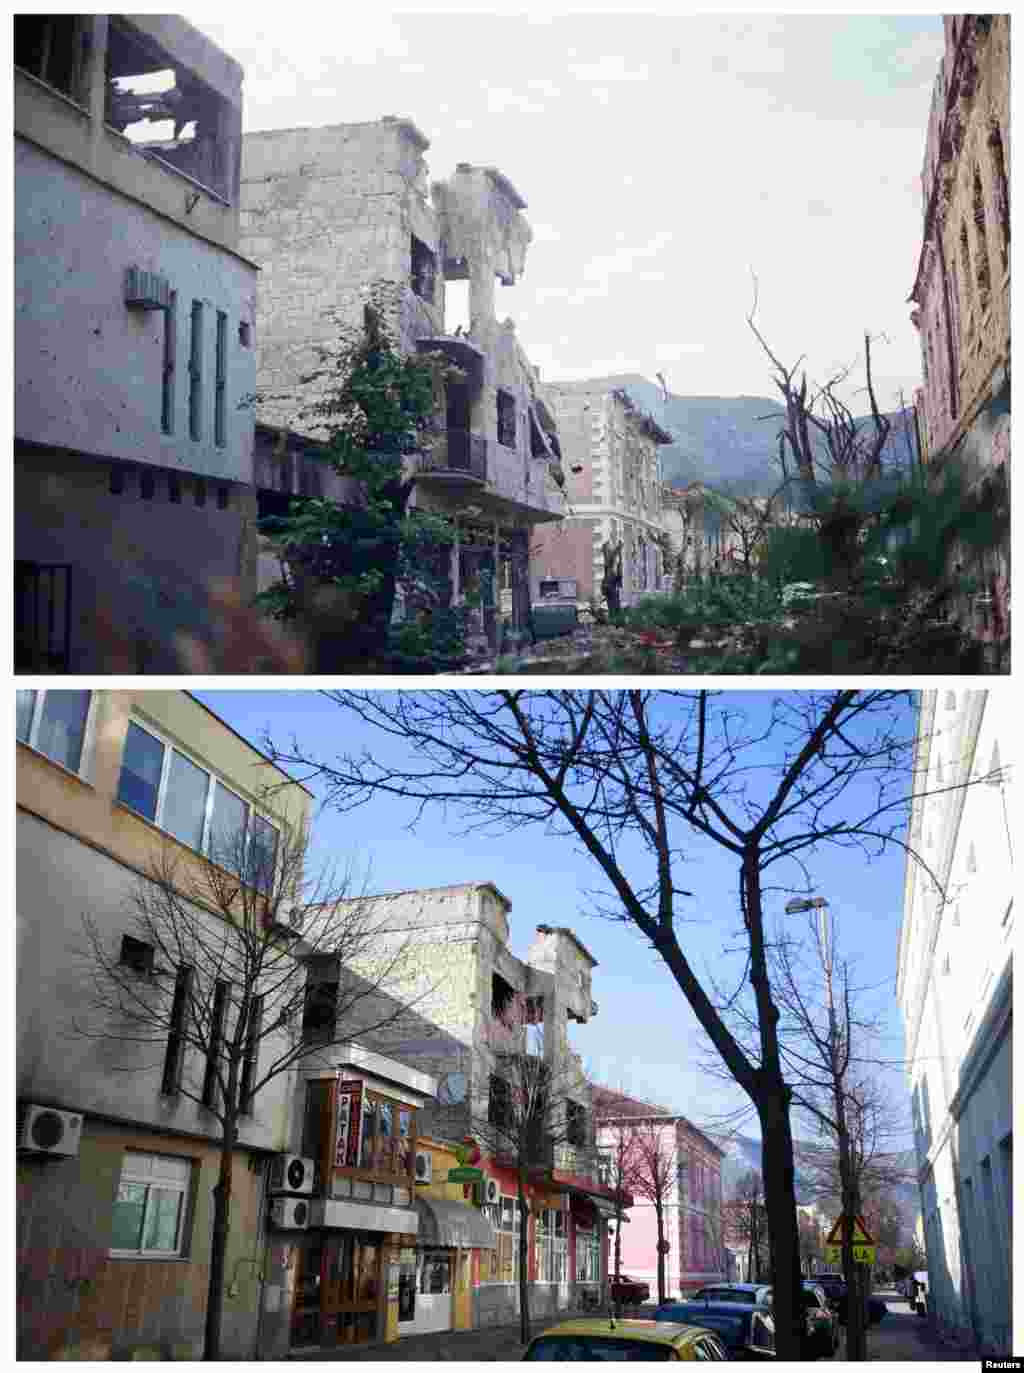 Destroyed buildings on Santiceva Street in Mostar in June 1993. The other photo is the same street on February 20, 2013.